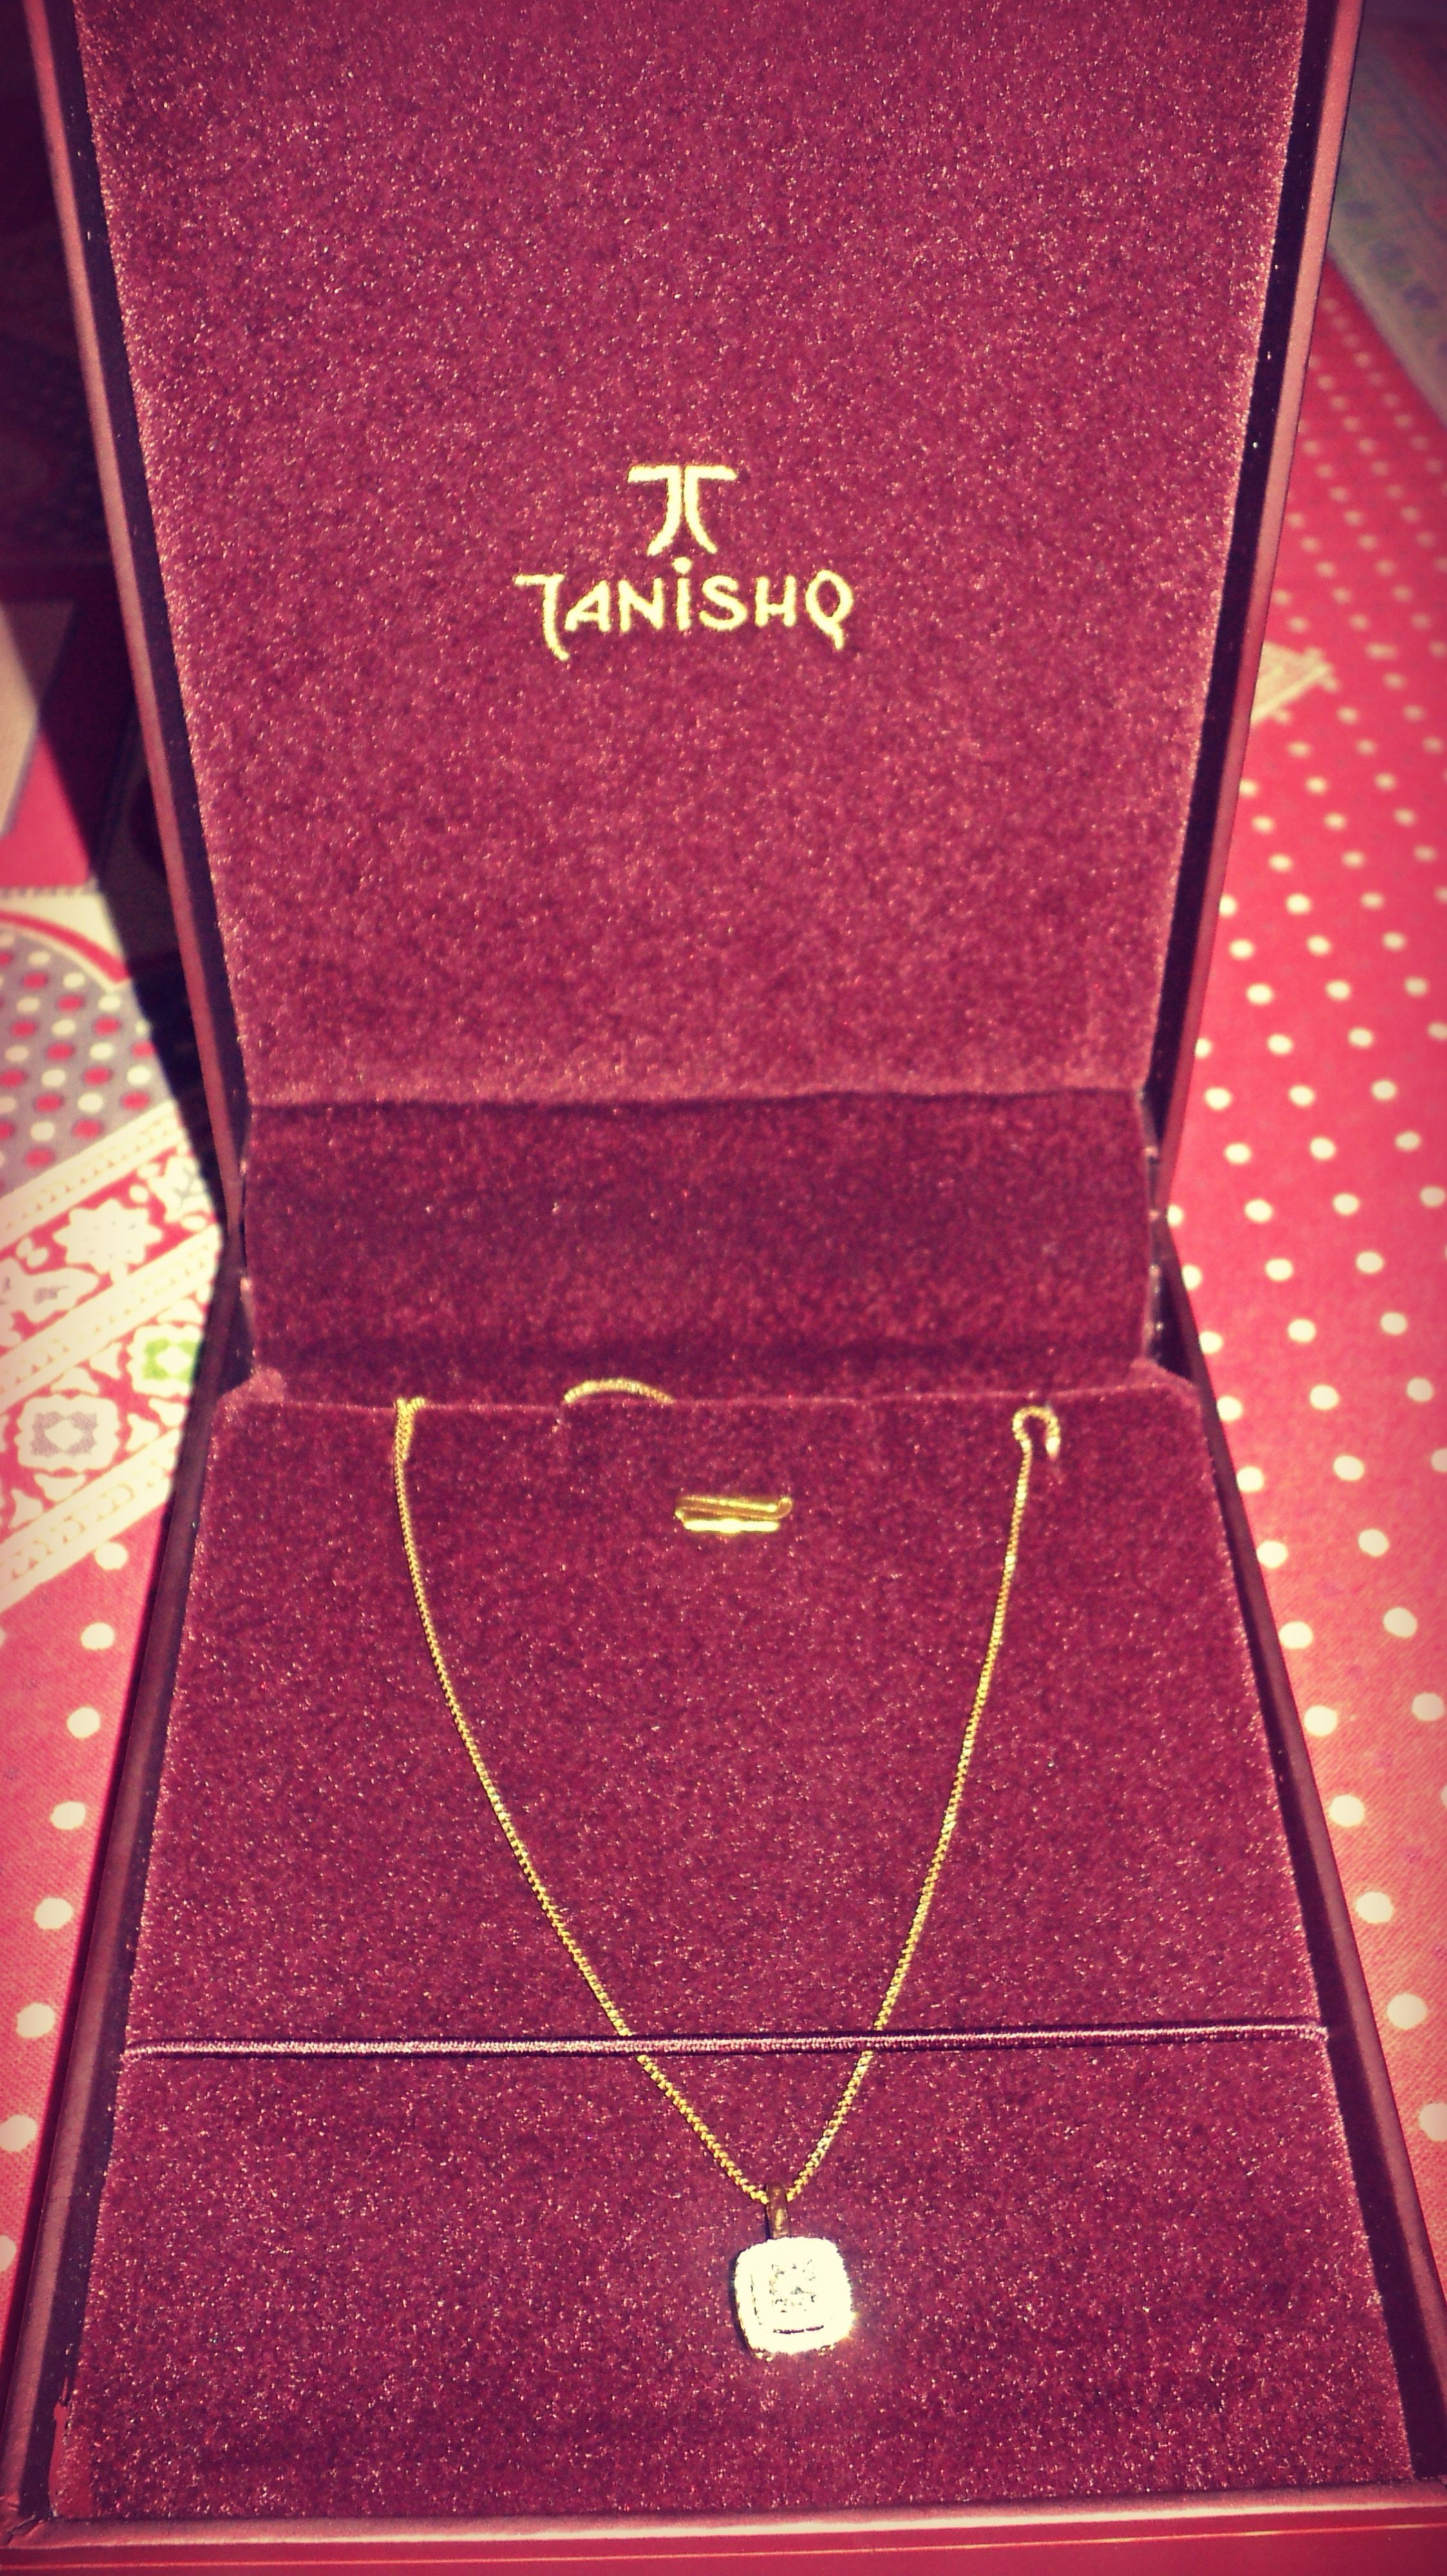 Daimond and Gold Chain For my sister. #Tanishq   Tanishq Exotic ...